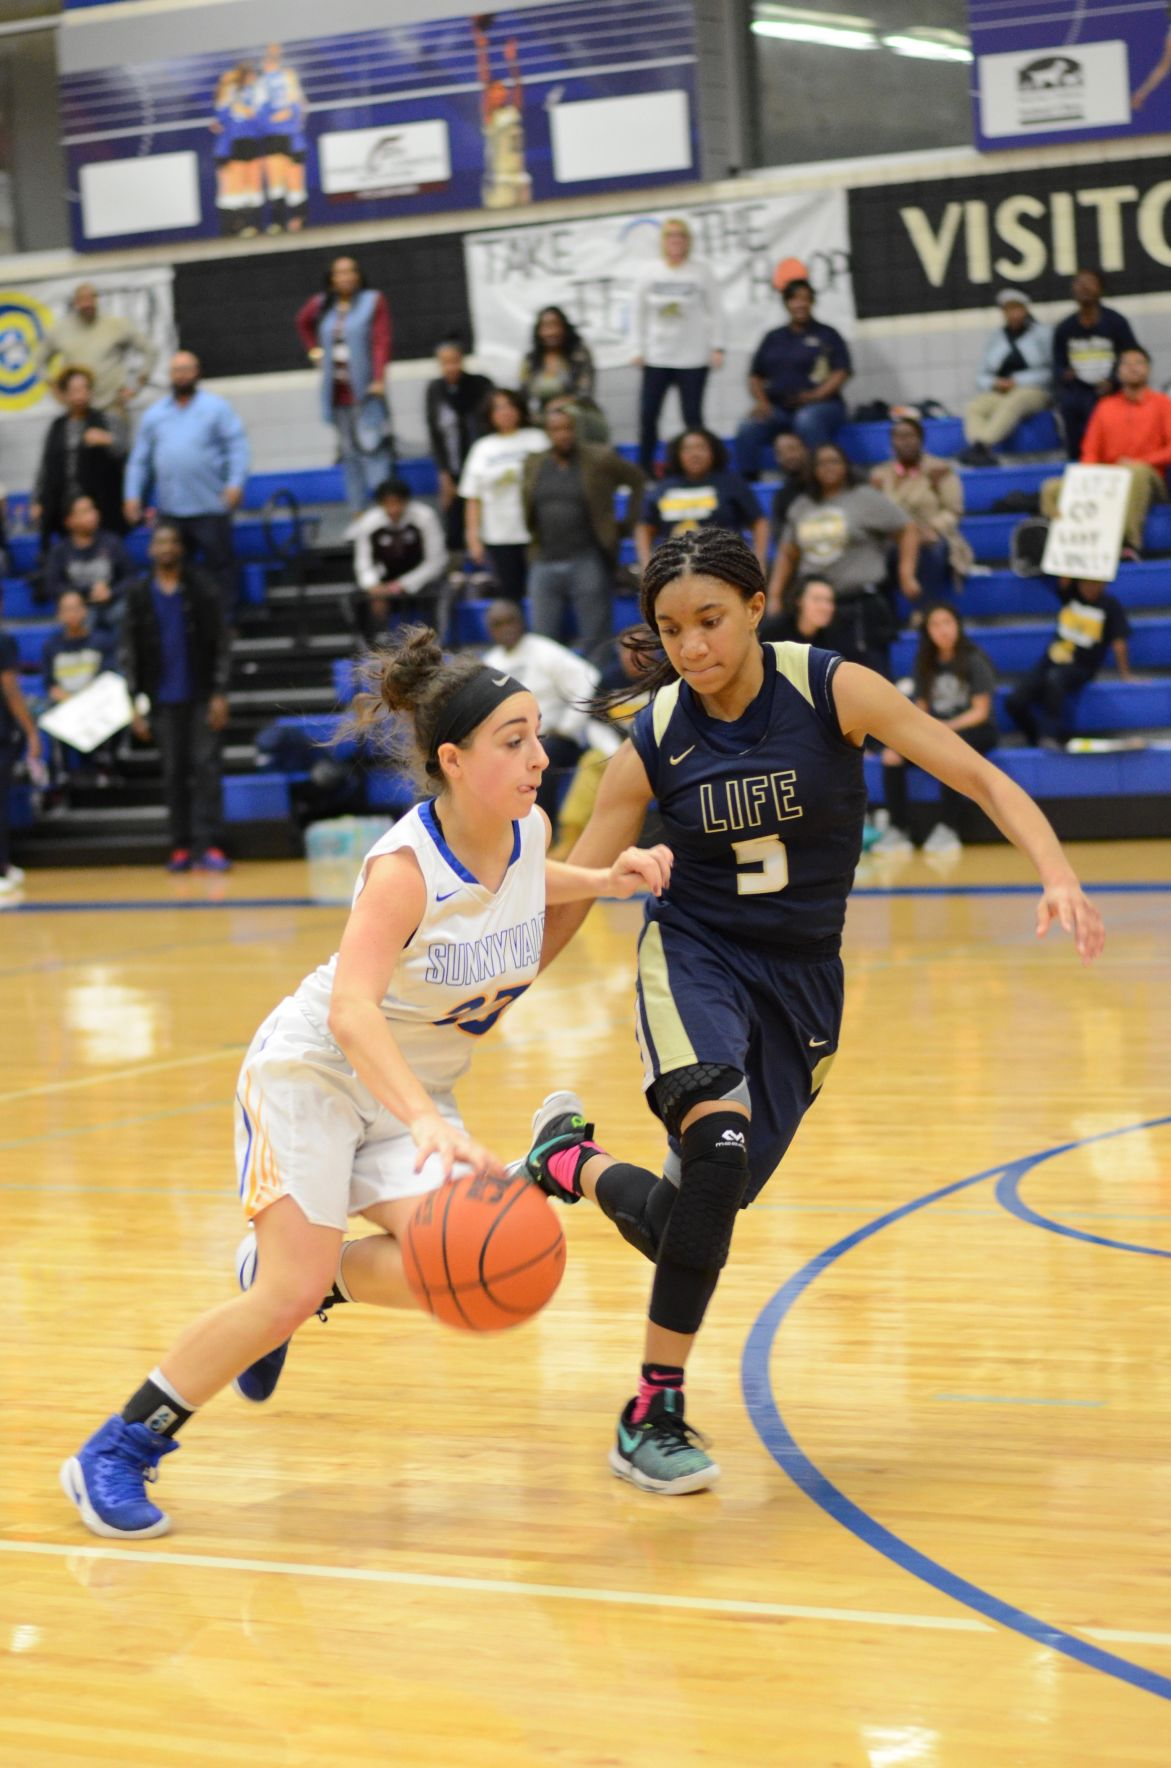 sunnyvale girls View the schedule, scores, league standings, rankings, roster, team stats, articles, photos and video highlights for the sunnyvale girls basketball team on maxpreps.